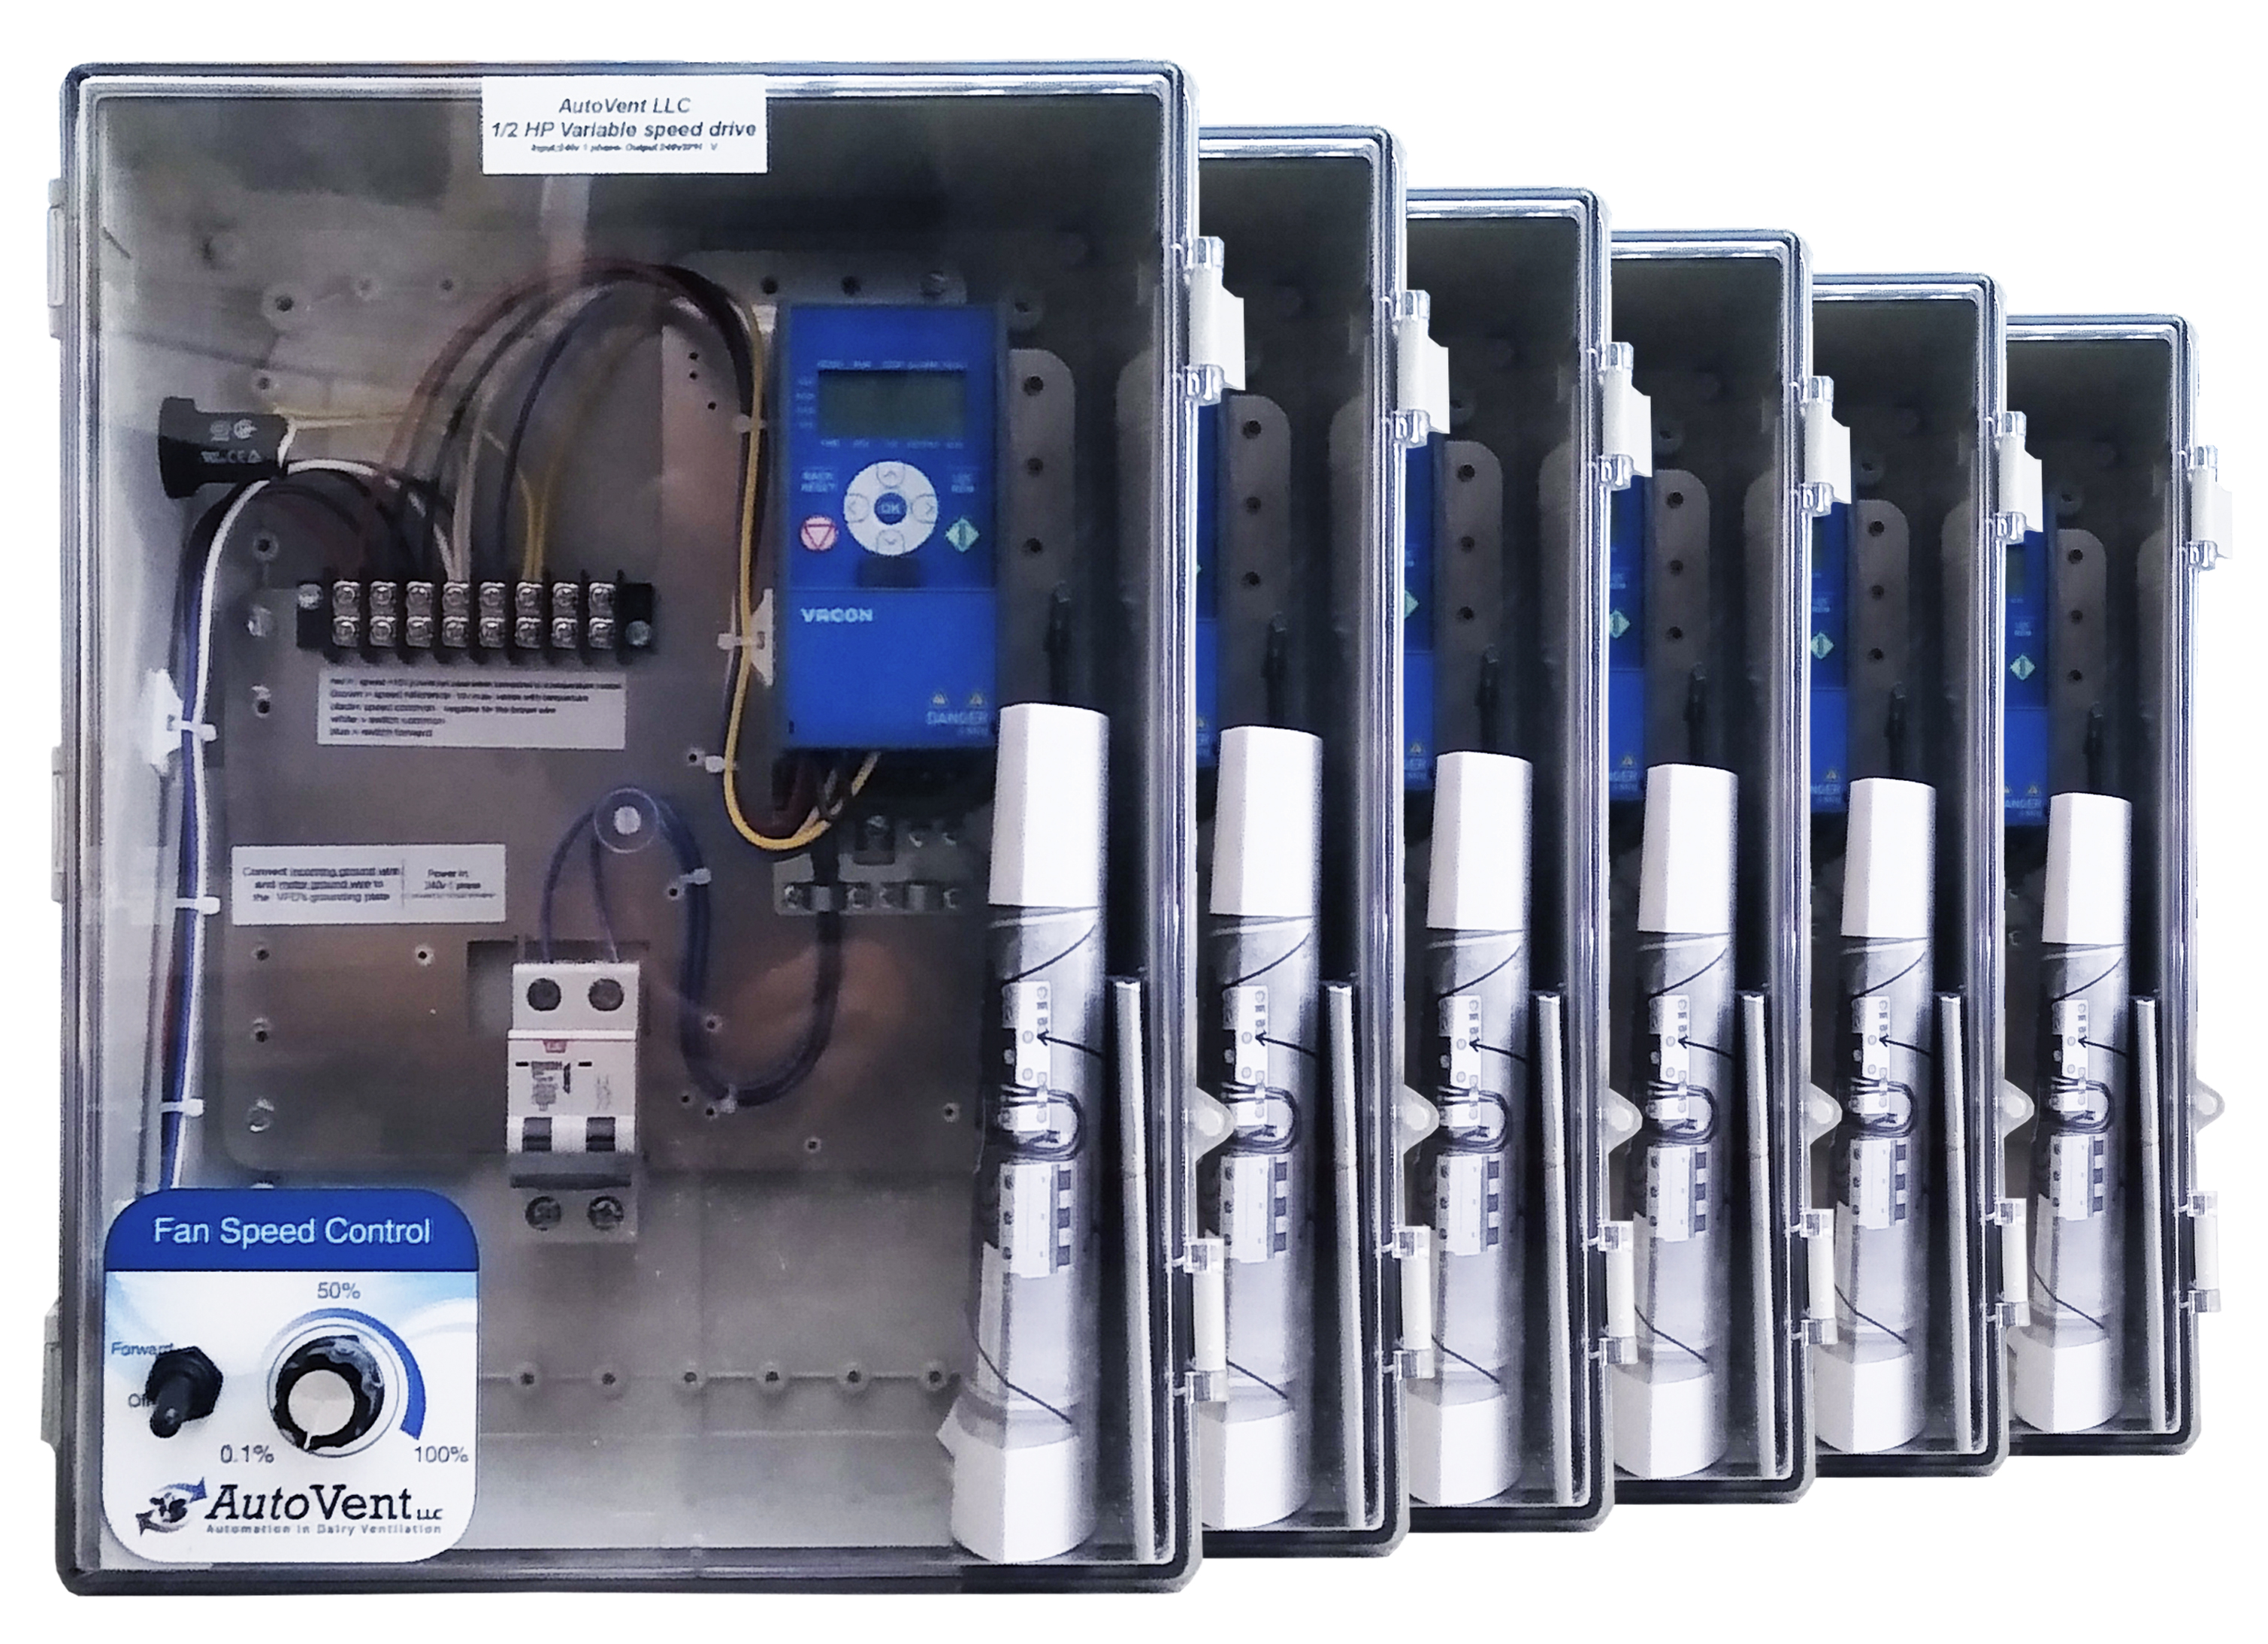 AutoVent variable speed drives come in a variety of sizes